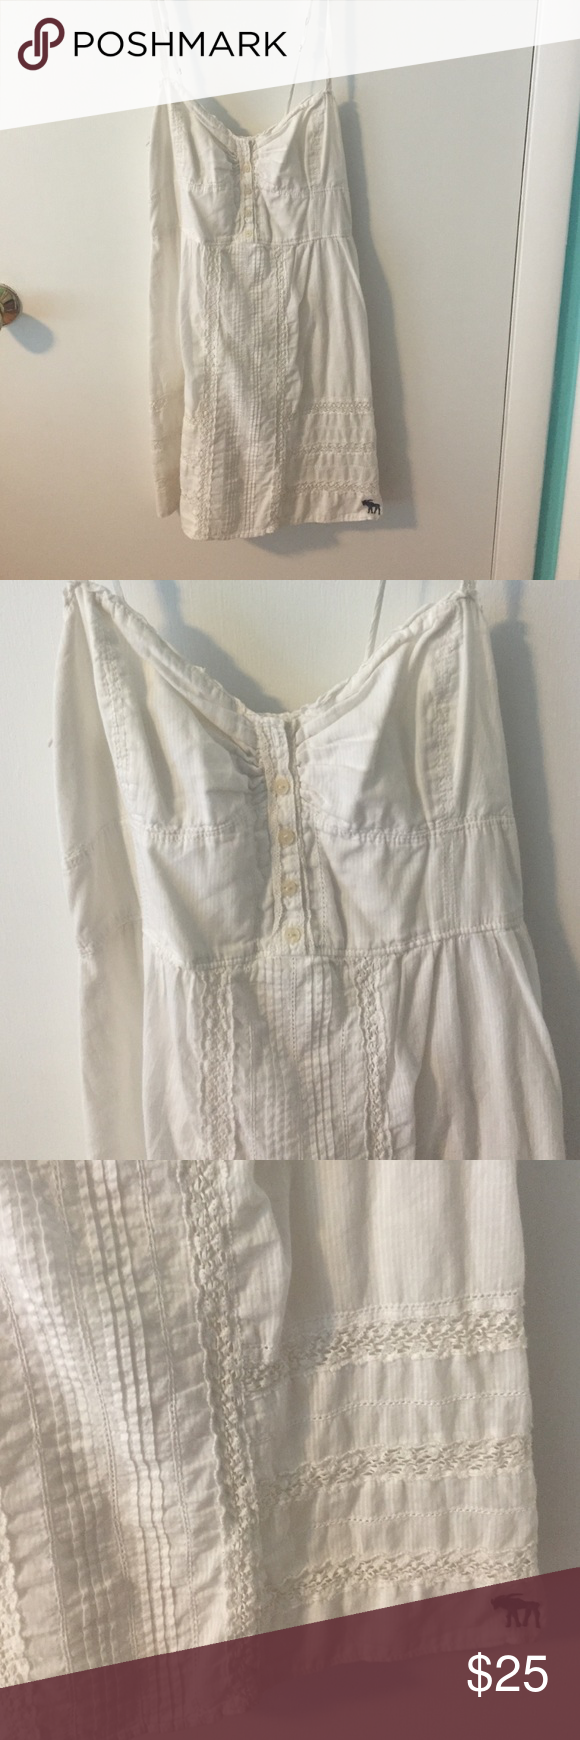 SOLD- Cream Abercrombie & Fitch Peasant Dress